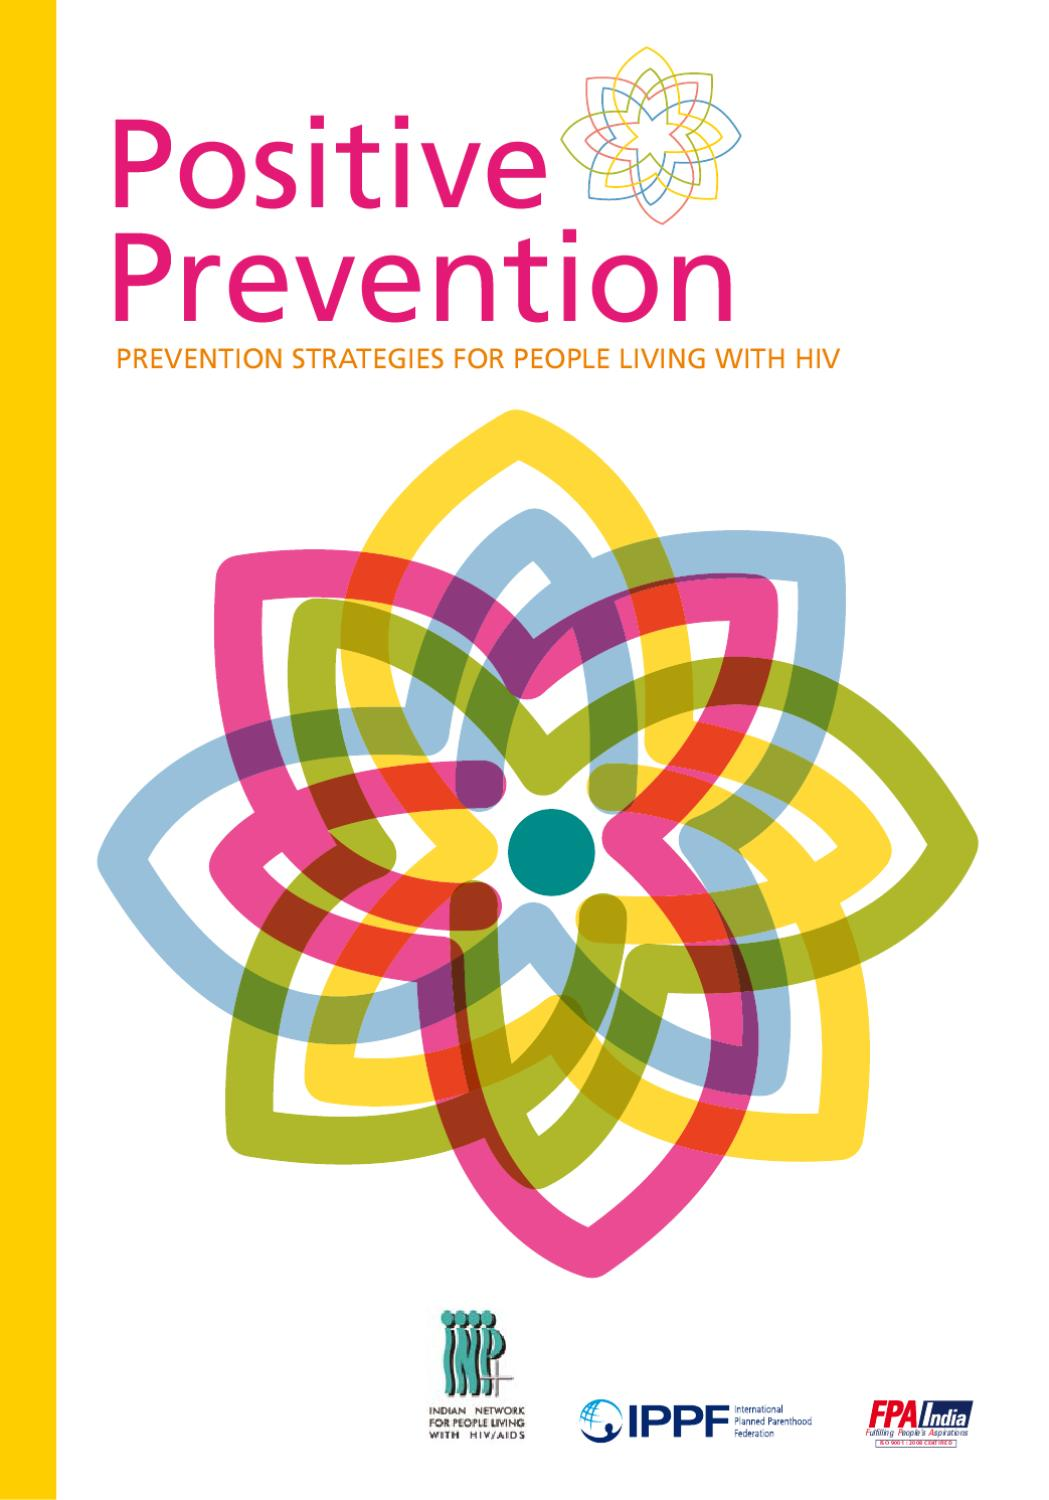 Positive_Prevention_for_People_Living_with_HIV by IPPF - issuu